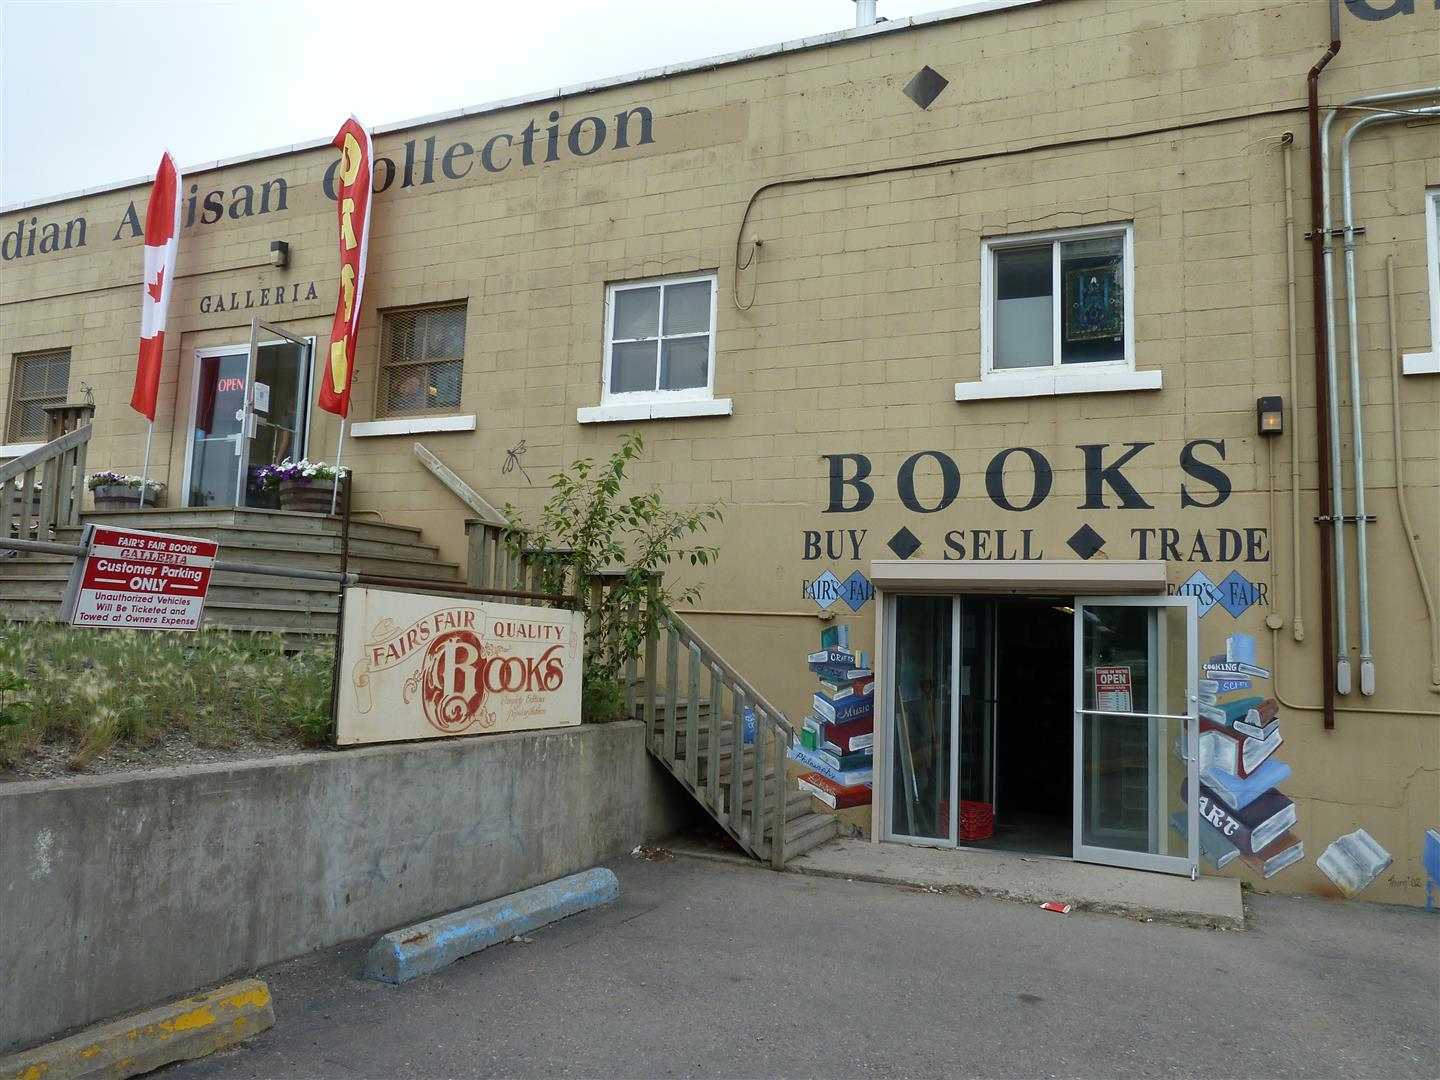 Fair's Fair Books combined with Galleria is an urban trekker's hidden gem for hipsters, as well as others.